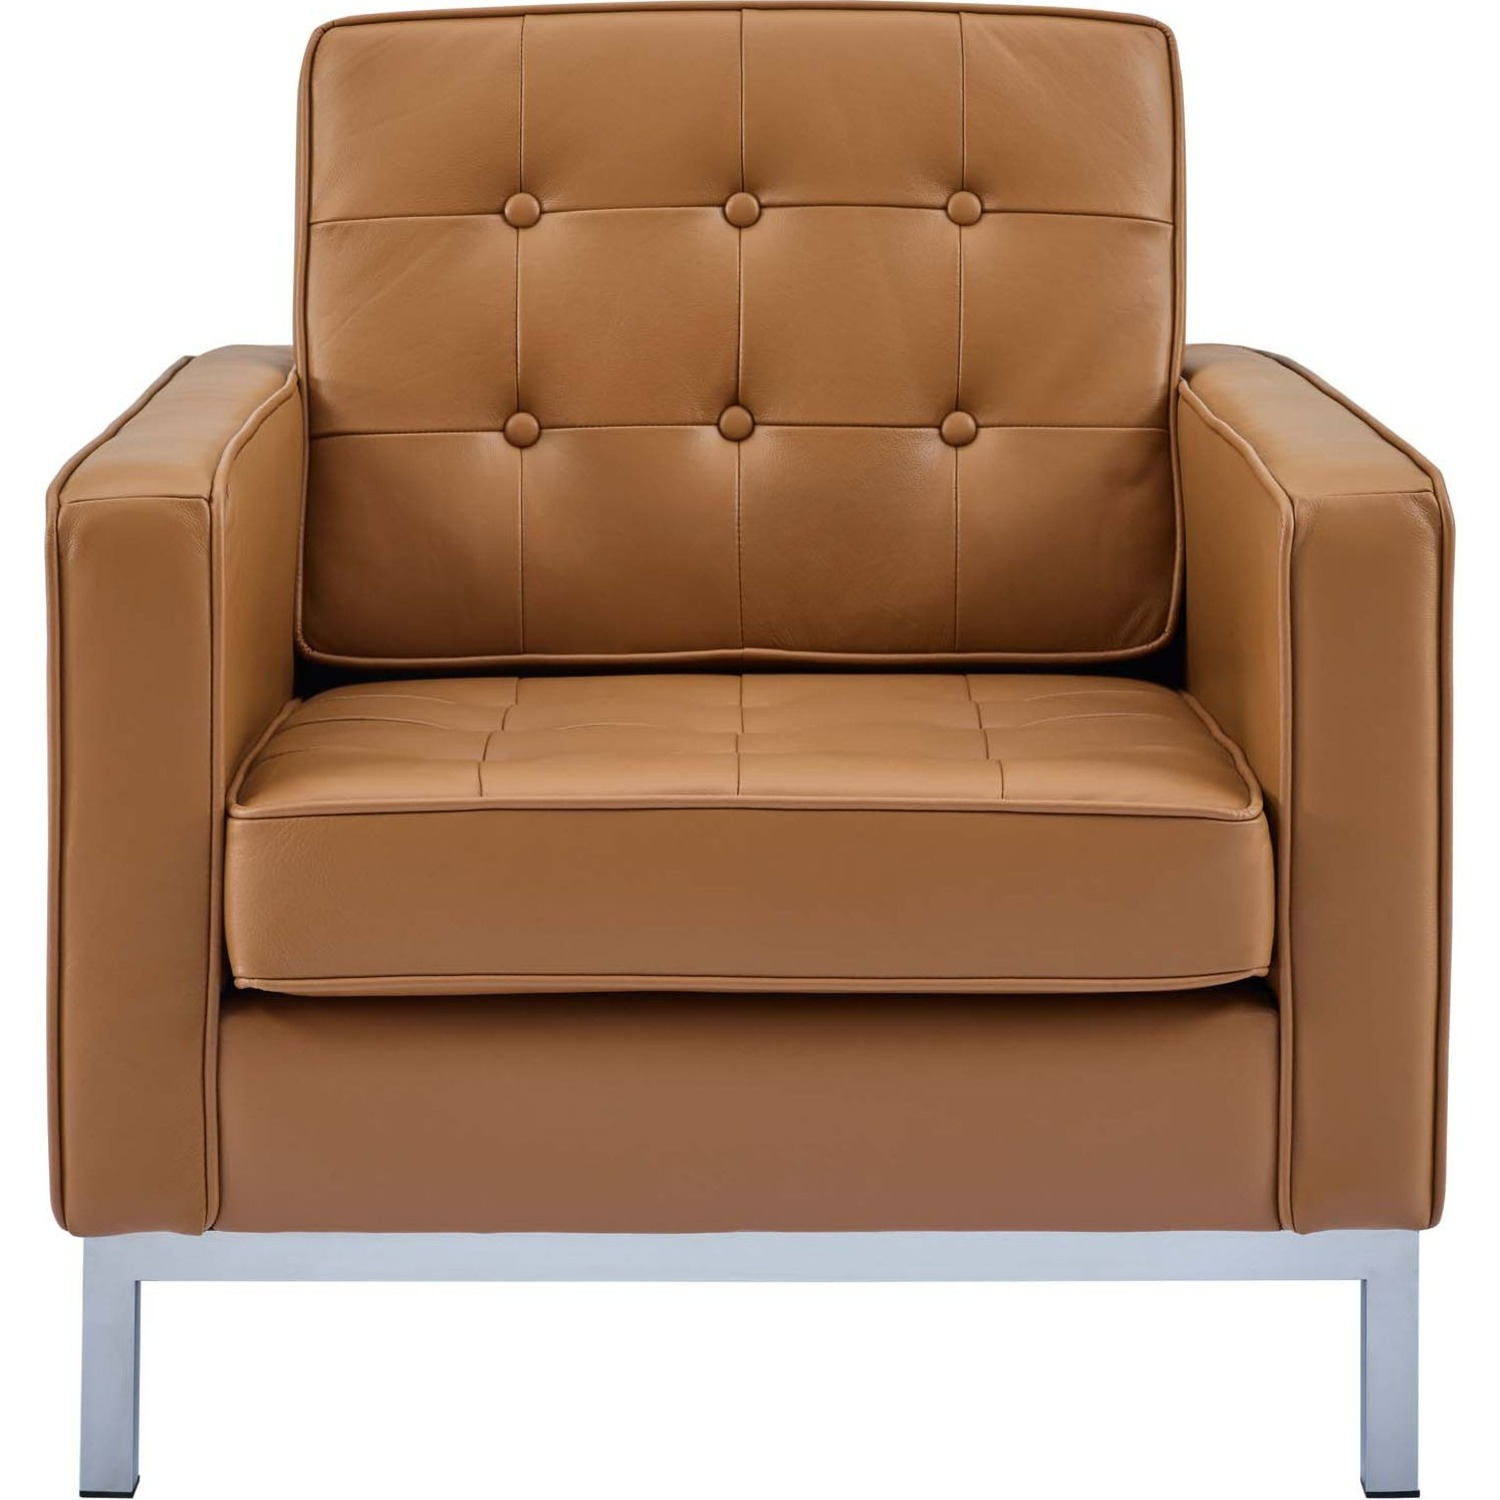 Modern Armchair In Tan Leather W/ Tufted Buttons - image-1